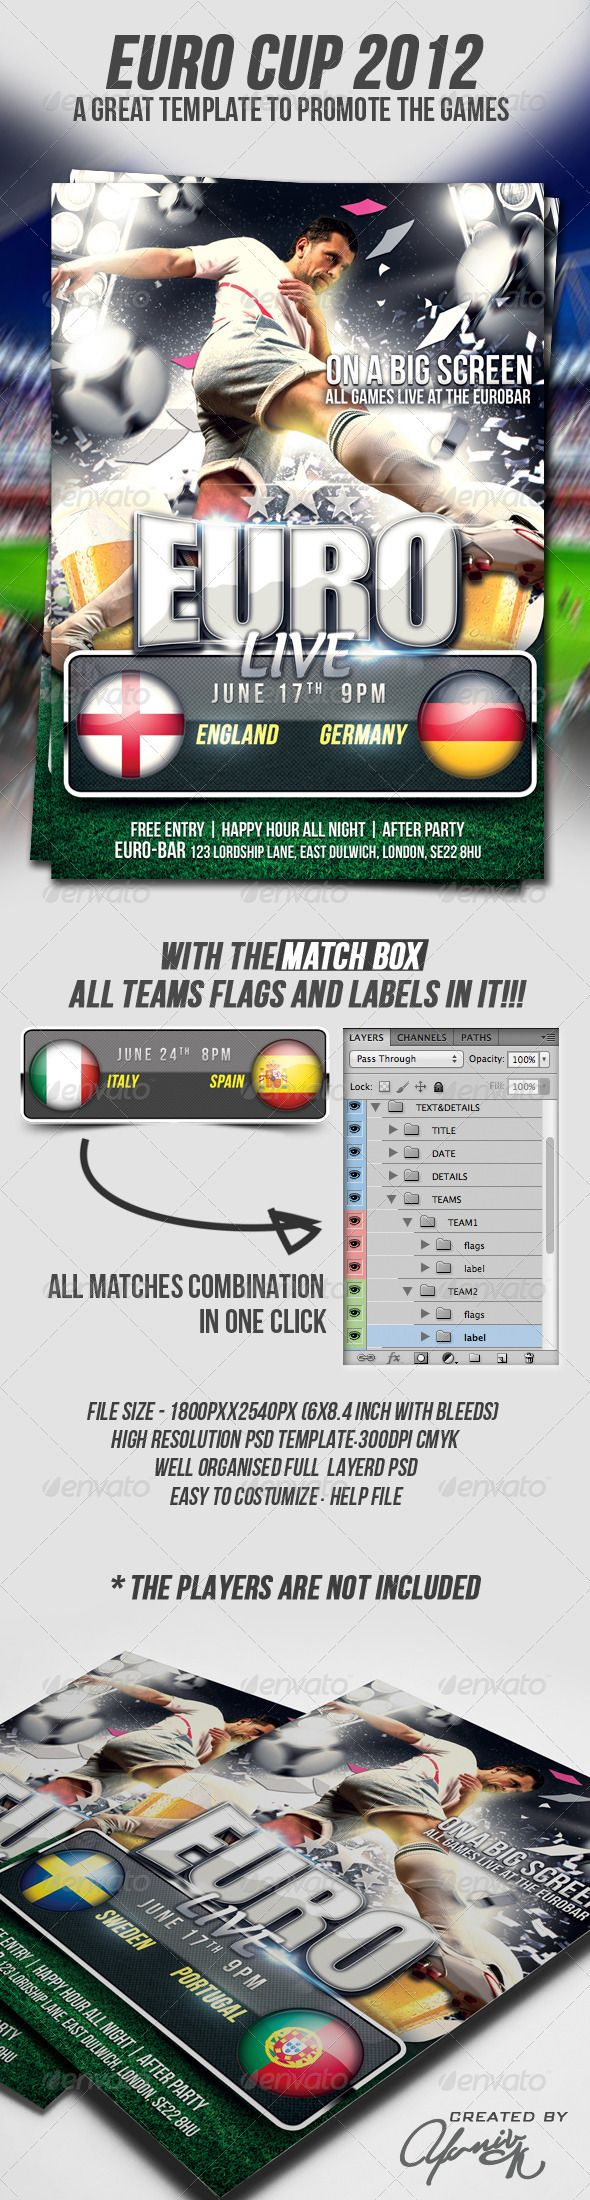 Euro Cup Flyer Template  #GraphicRiver         Euro Cup 2012 Flyer Template Euro 2012 is here!!! this great template designed to promote all bars/places that bring it on with big screen, live  FEATURS:  The PSD file dimensions are: 1800×2540 (6×8.4 inches with bleeds)  300dpi resolution Color mode: CMYK Print ready.